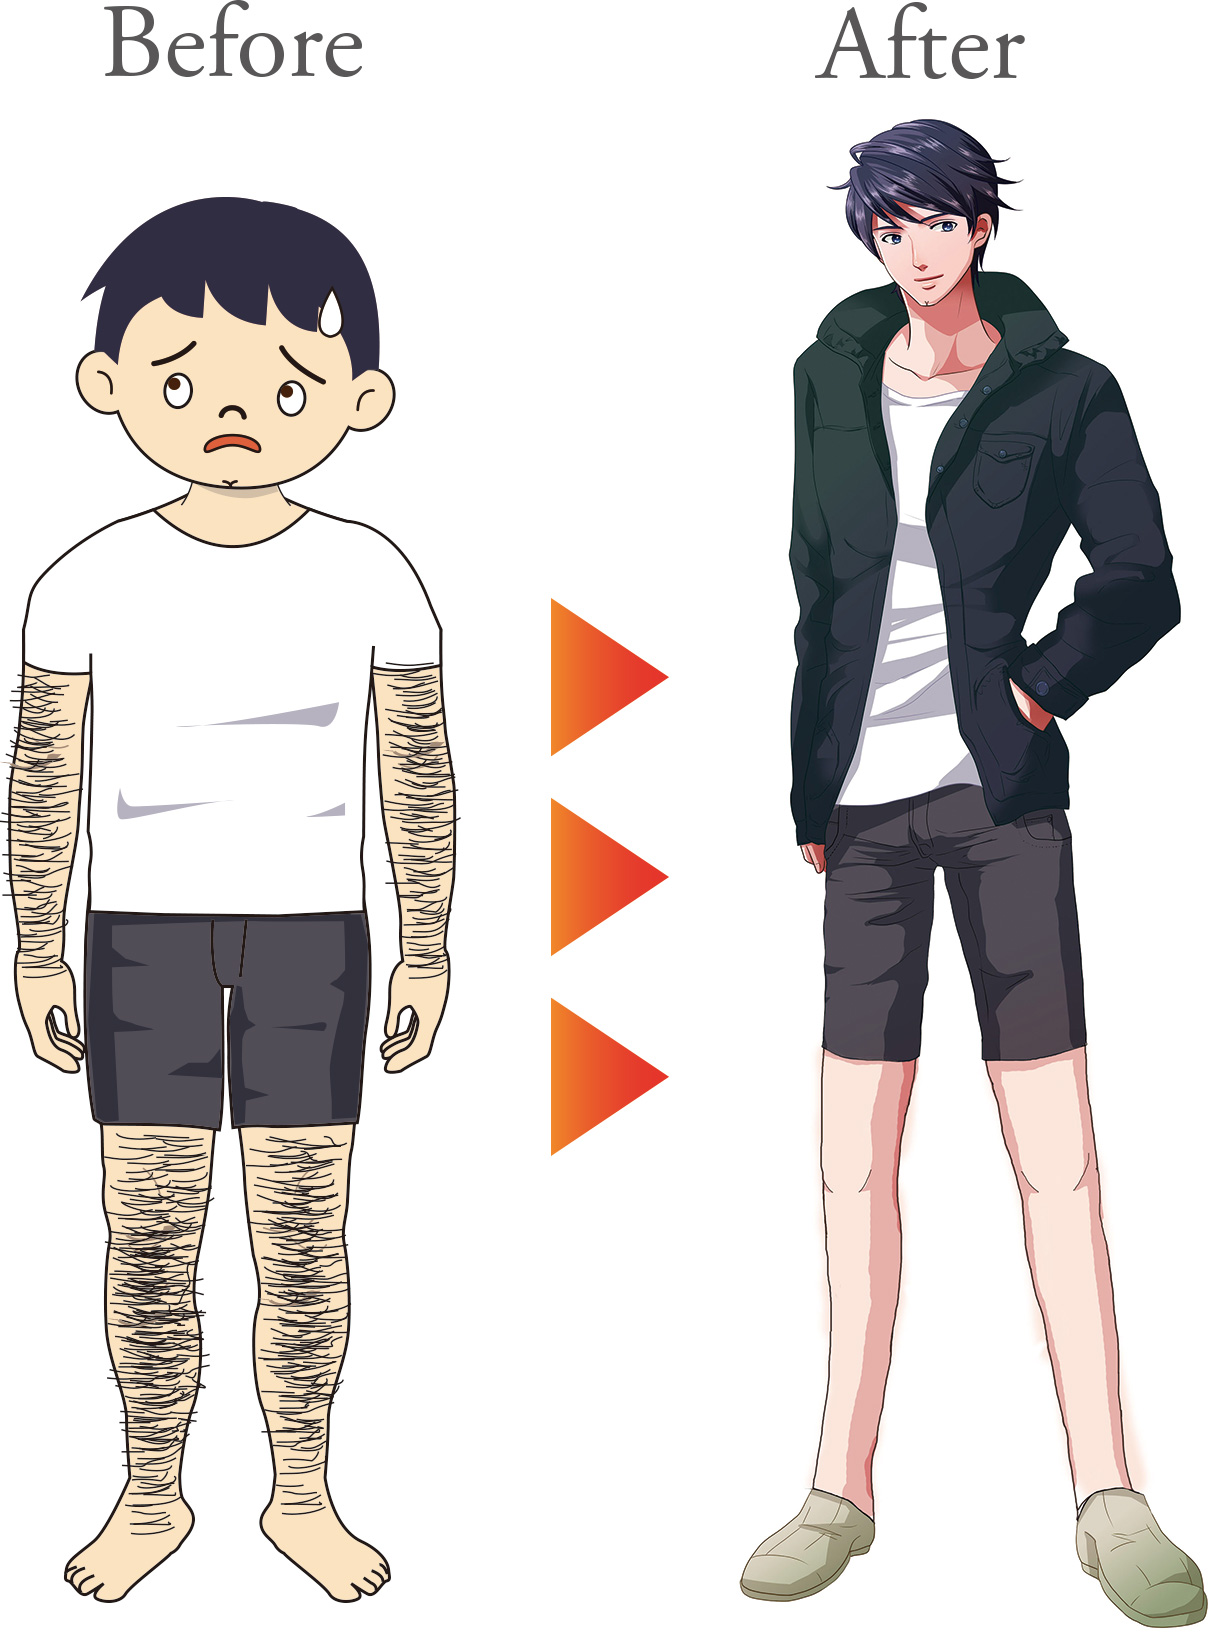 datsumou-before-after